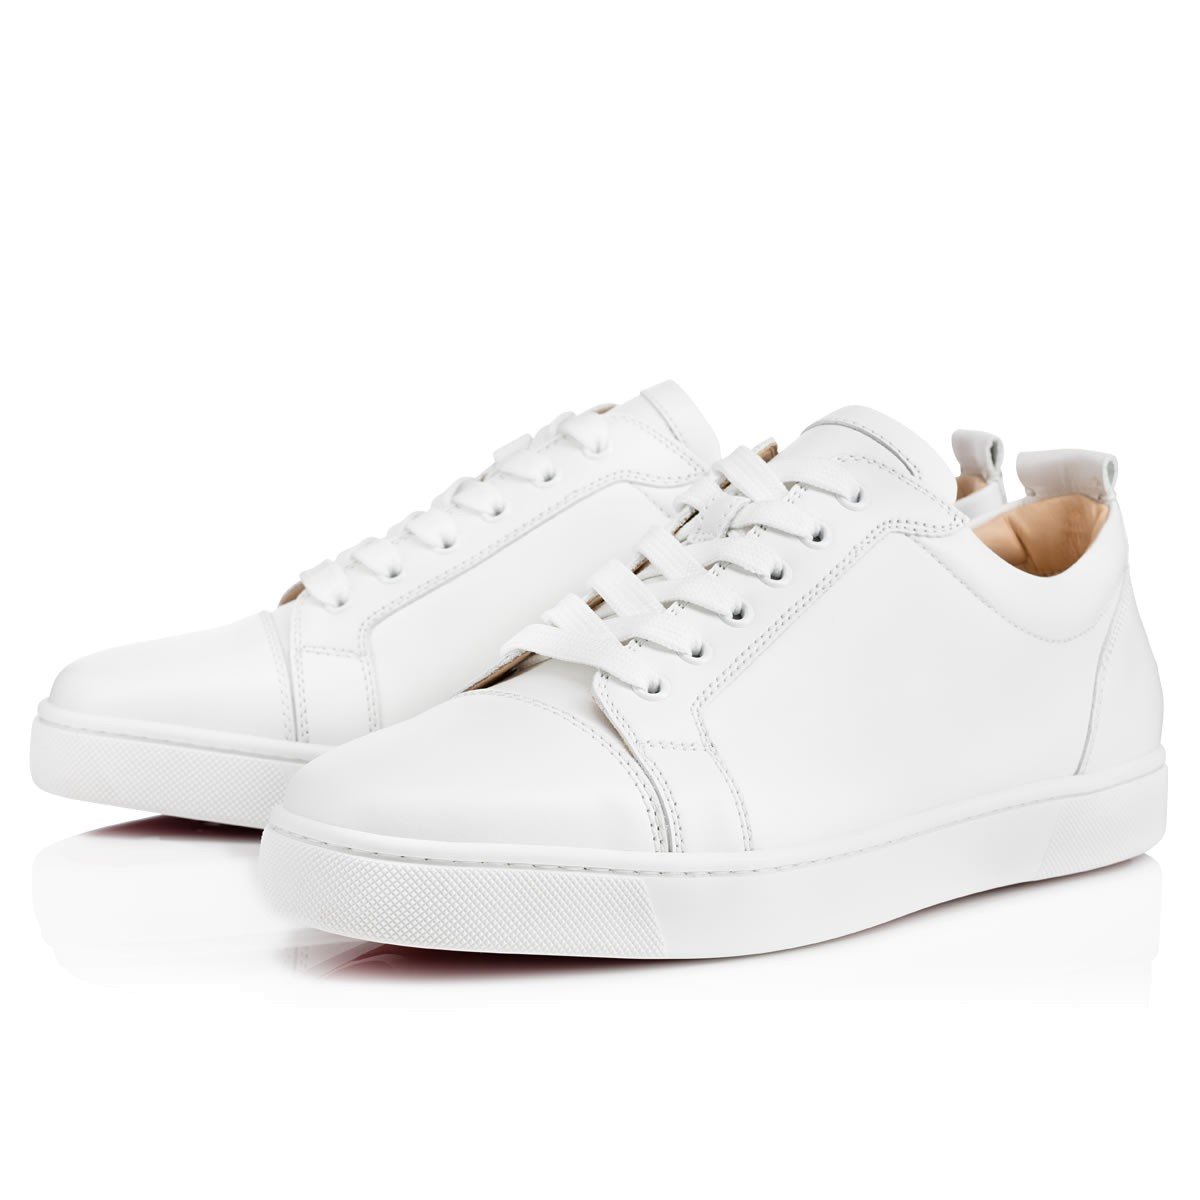 73bae55493e8 Louis Junior Men s Flat White Leather - Men Shoes - Christian Louboutin